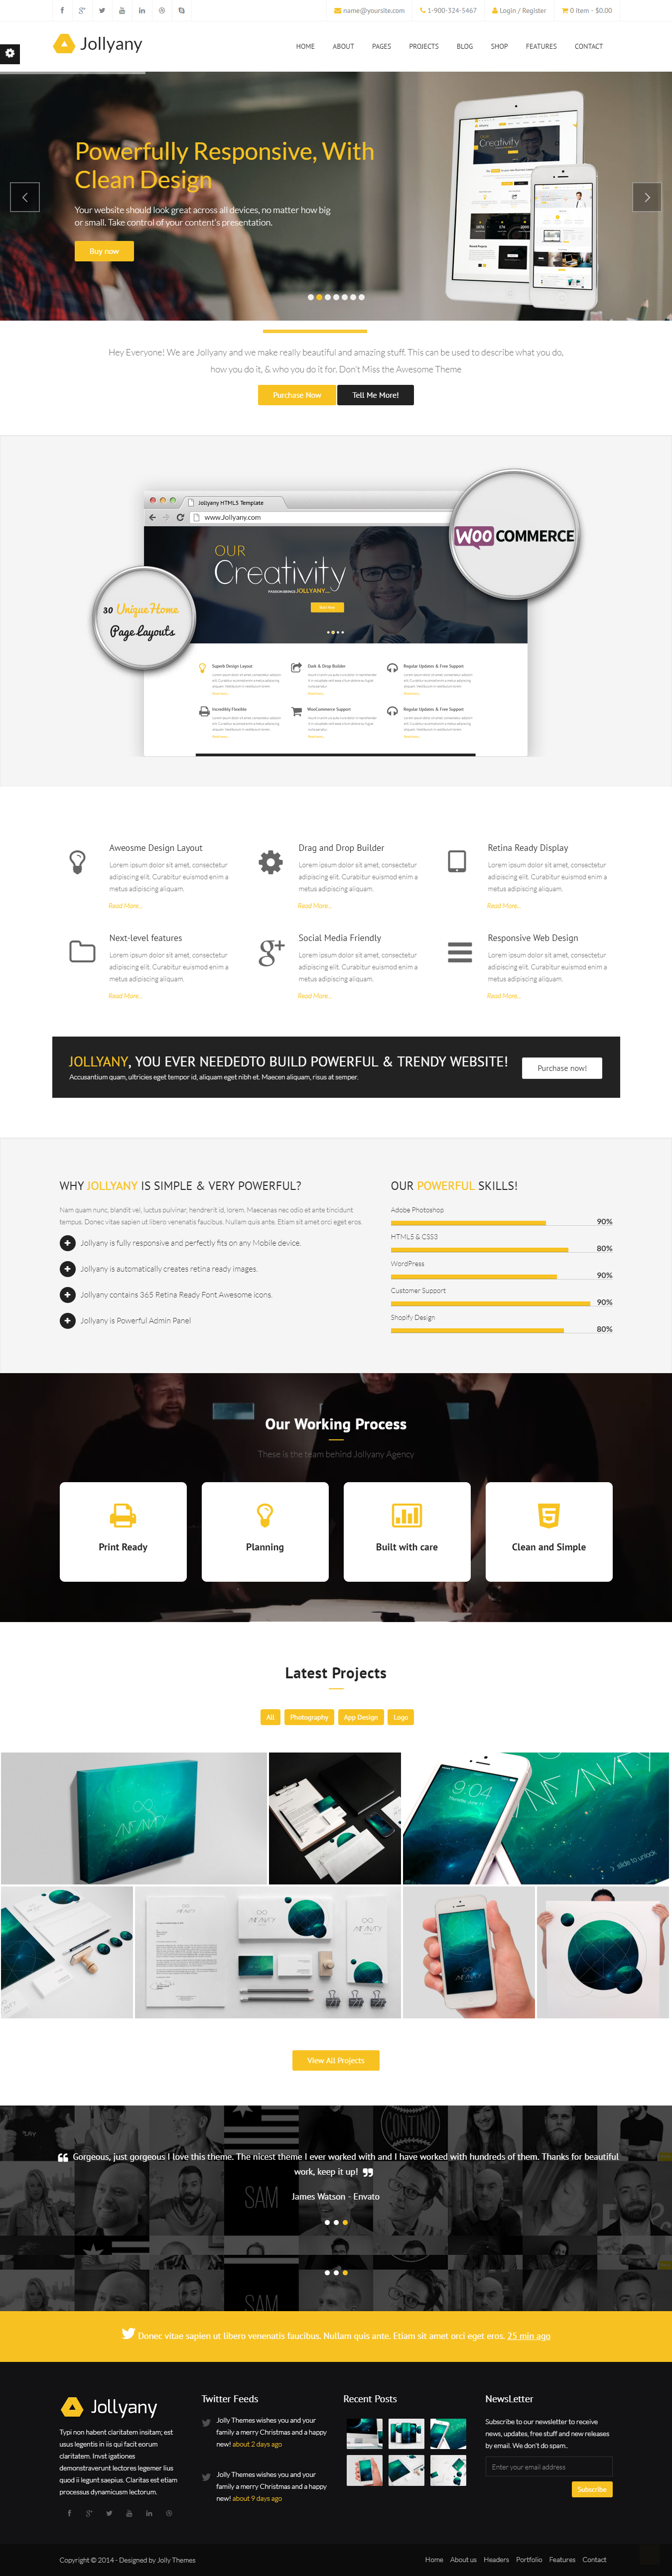 Jollyany A Classy Multipurpose WordPress Theme available for